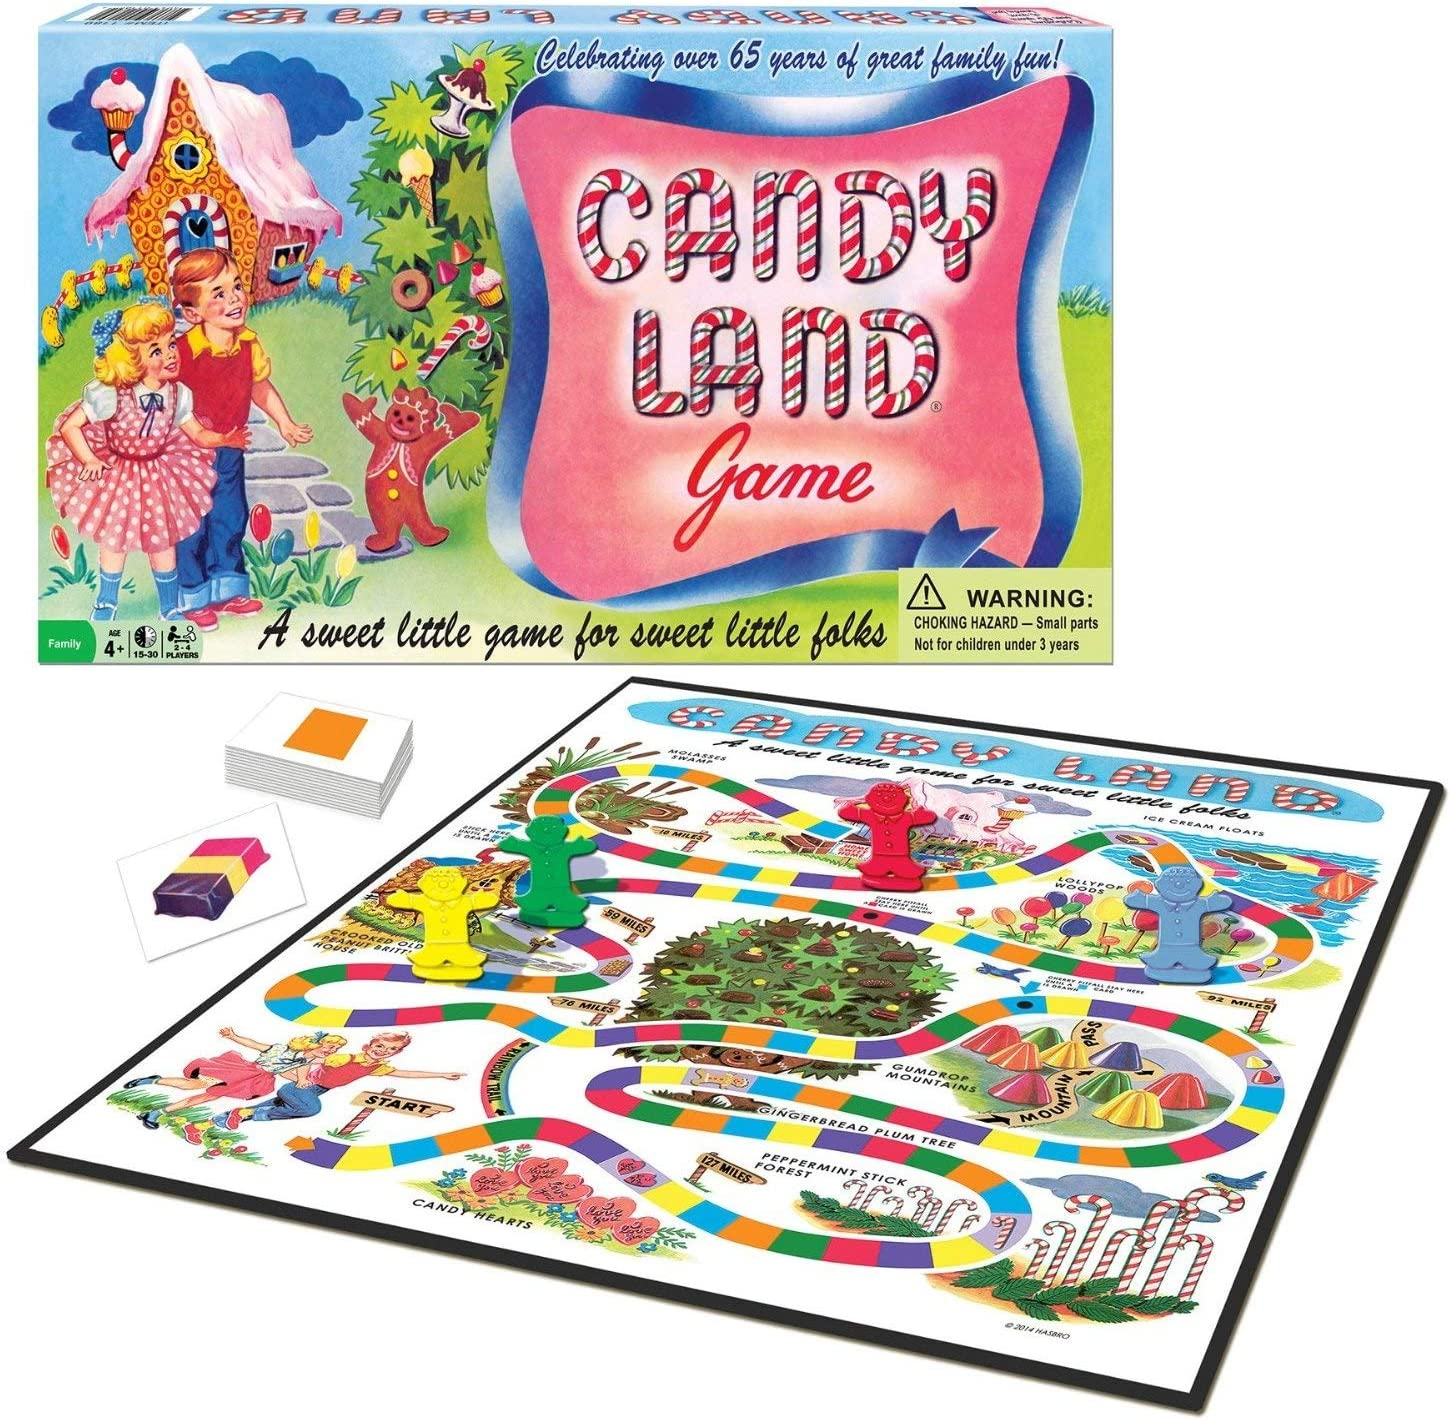 Top 20 Best Board Games For Kids (2020 Reviews & Buying Guide) 7